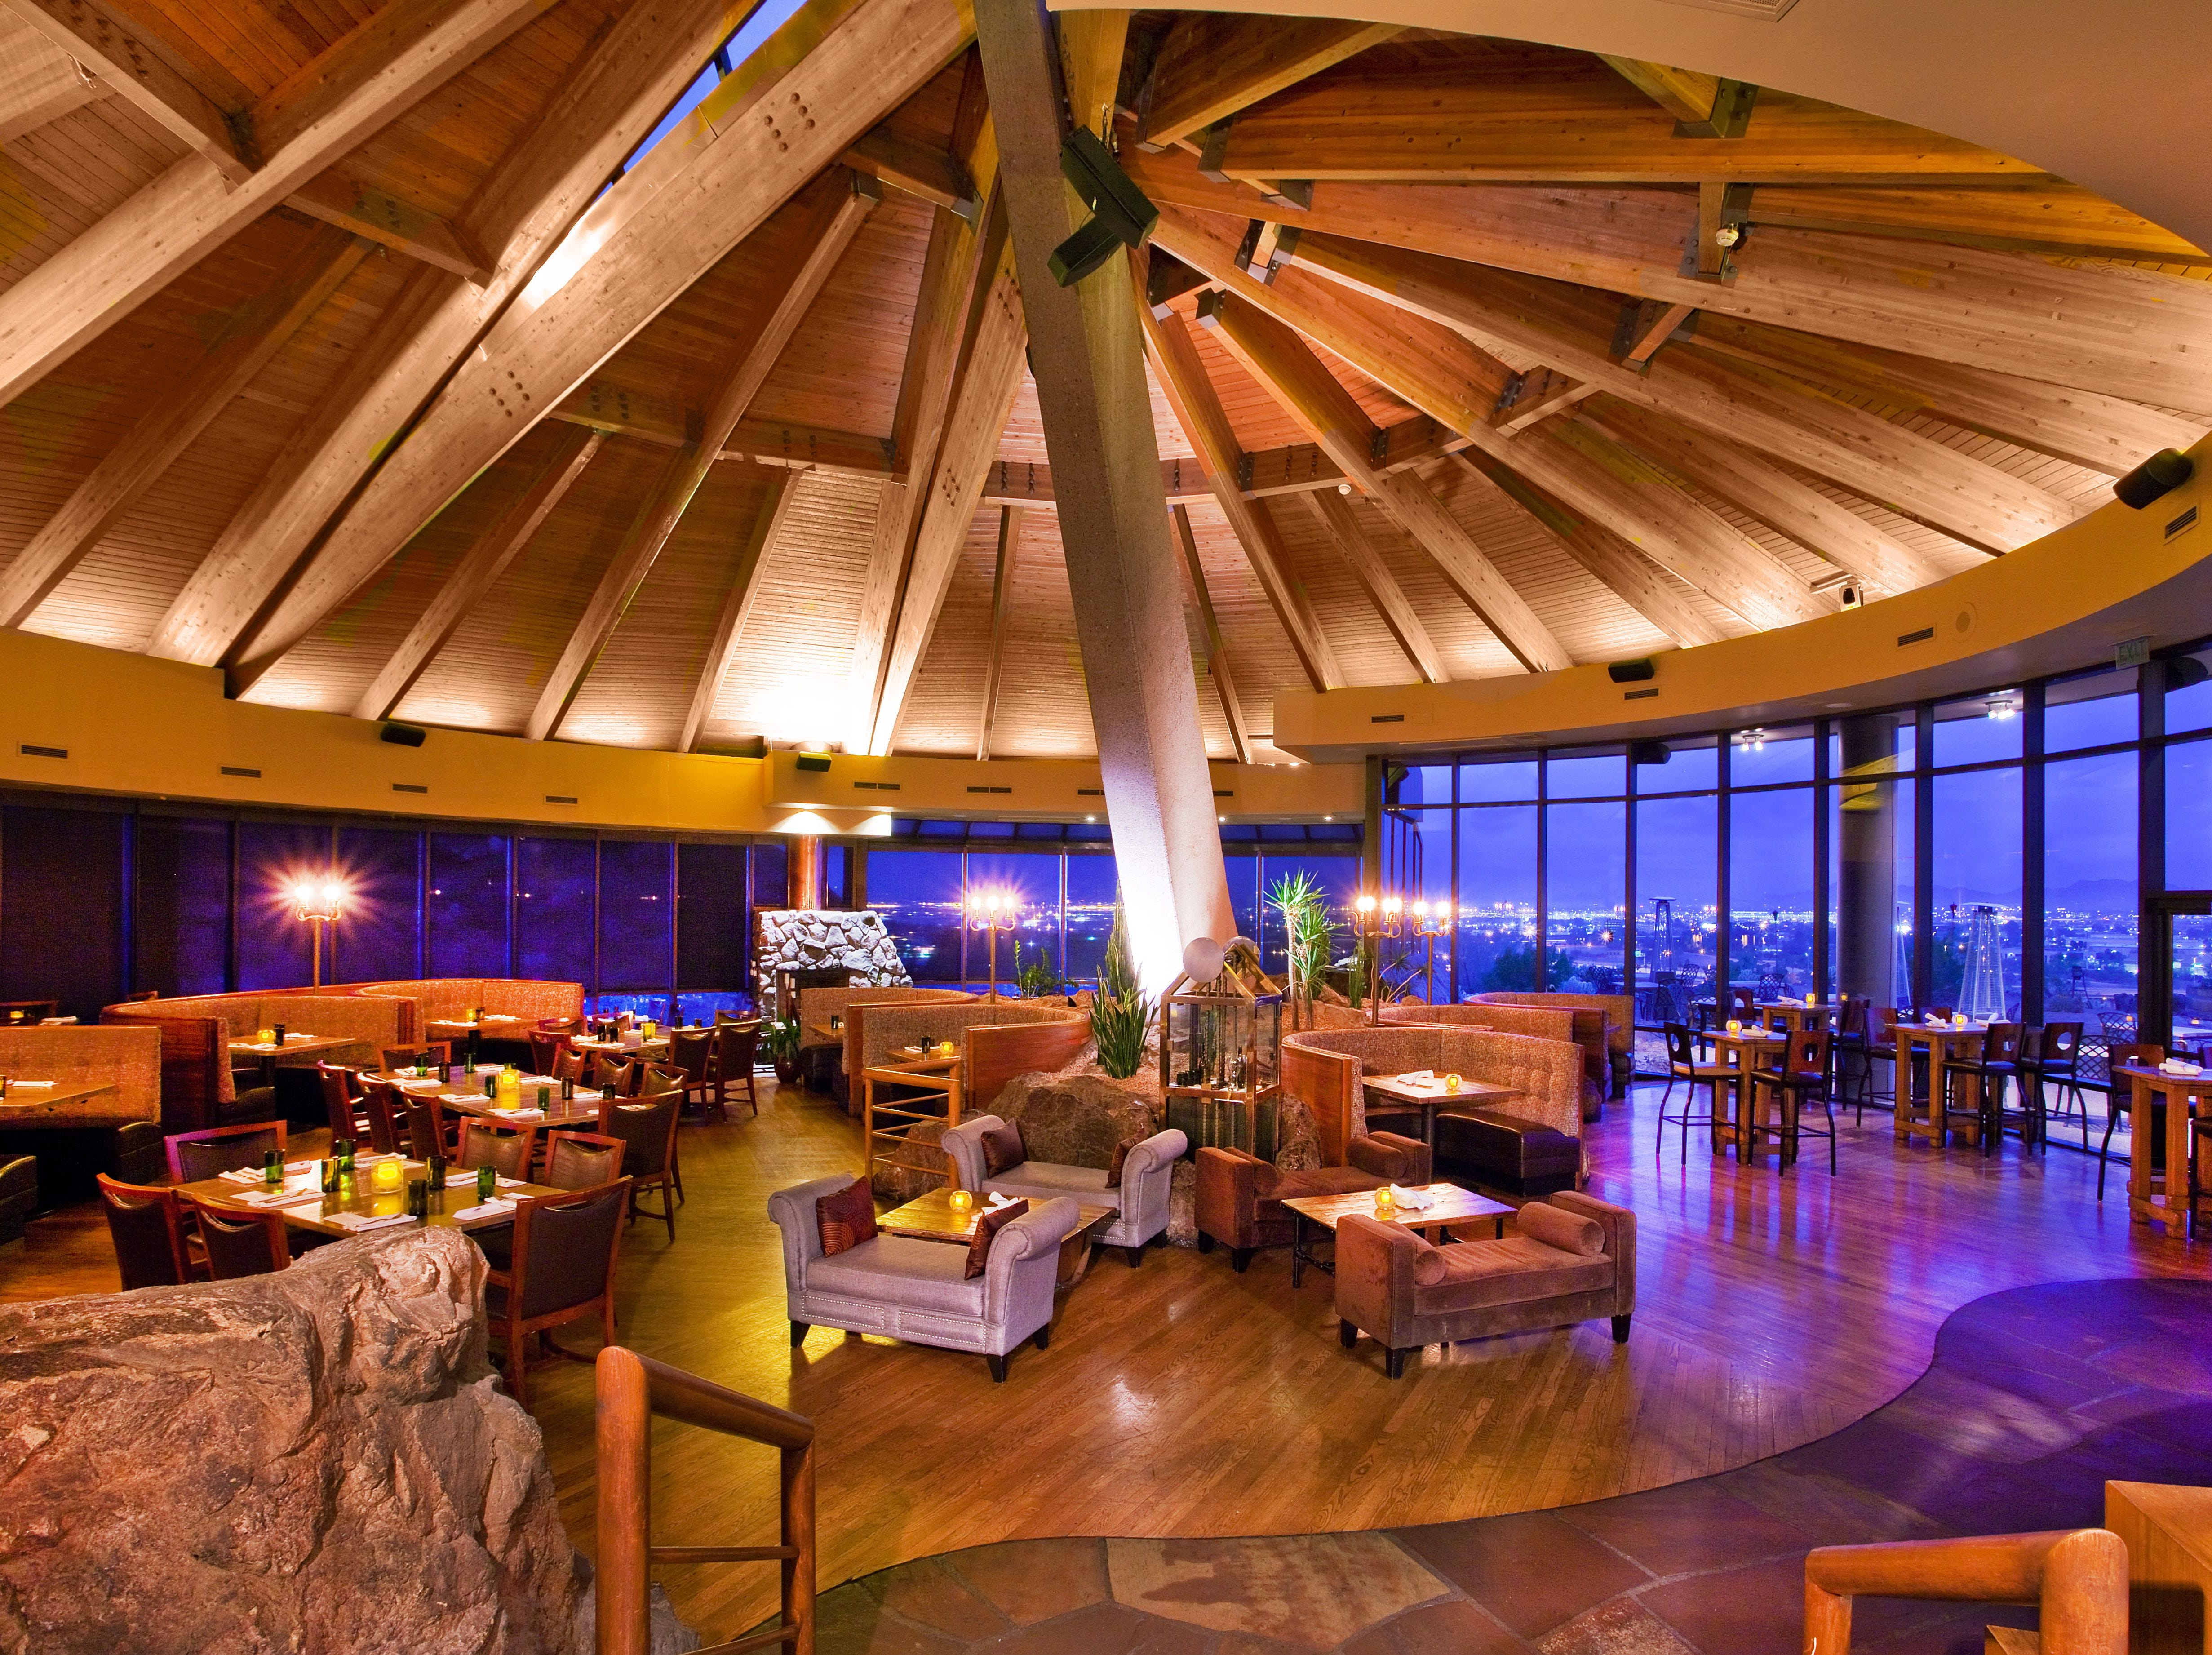 PHOENIX MARRIOTT RESORT TEMPE AT THE BUTTES | At the signature Top of the Rock restaurant from 10 a.m.-4 p.m., a brunch buffet ($69.95, $34.95 for ages 6-13) will feature classics including prime rib, glazed ham, king crab legs, made-to-order omelets, an assortment of salads and sides, breakfast favorites, and desserts.DETAILS: 2000 W. Westcourt Way, Tempe. 602-431-2370. marriott.com/PHXTM.